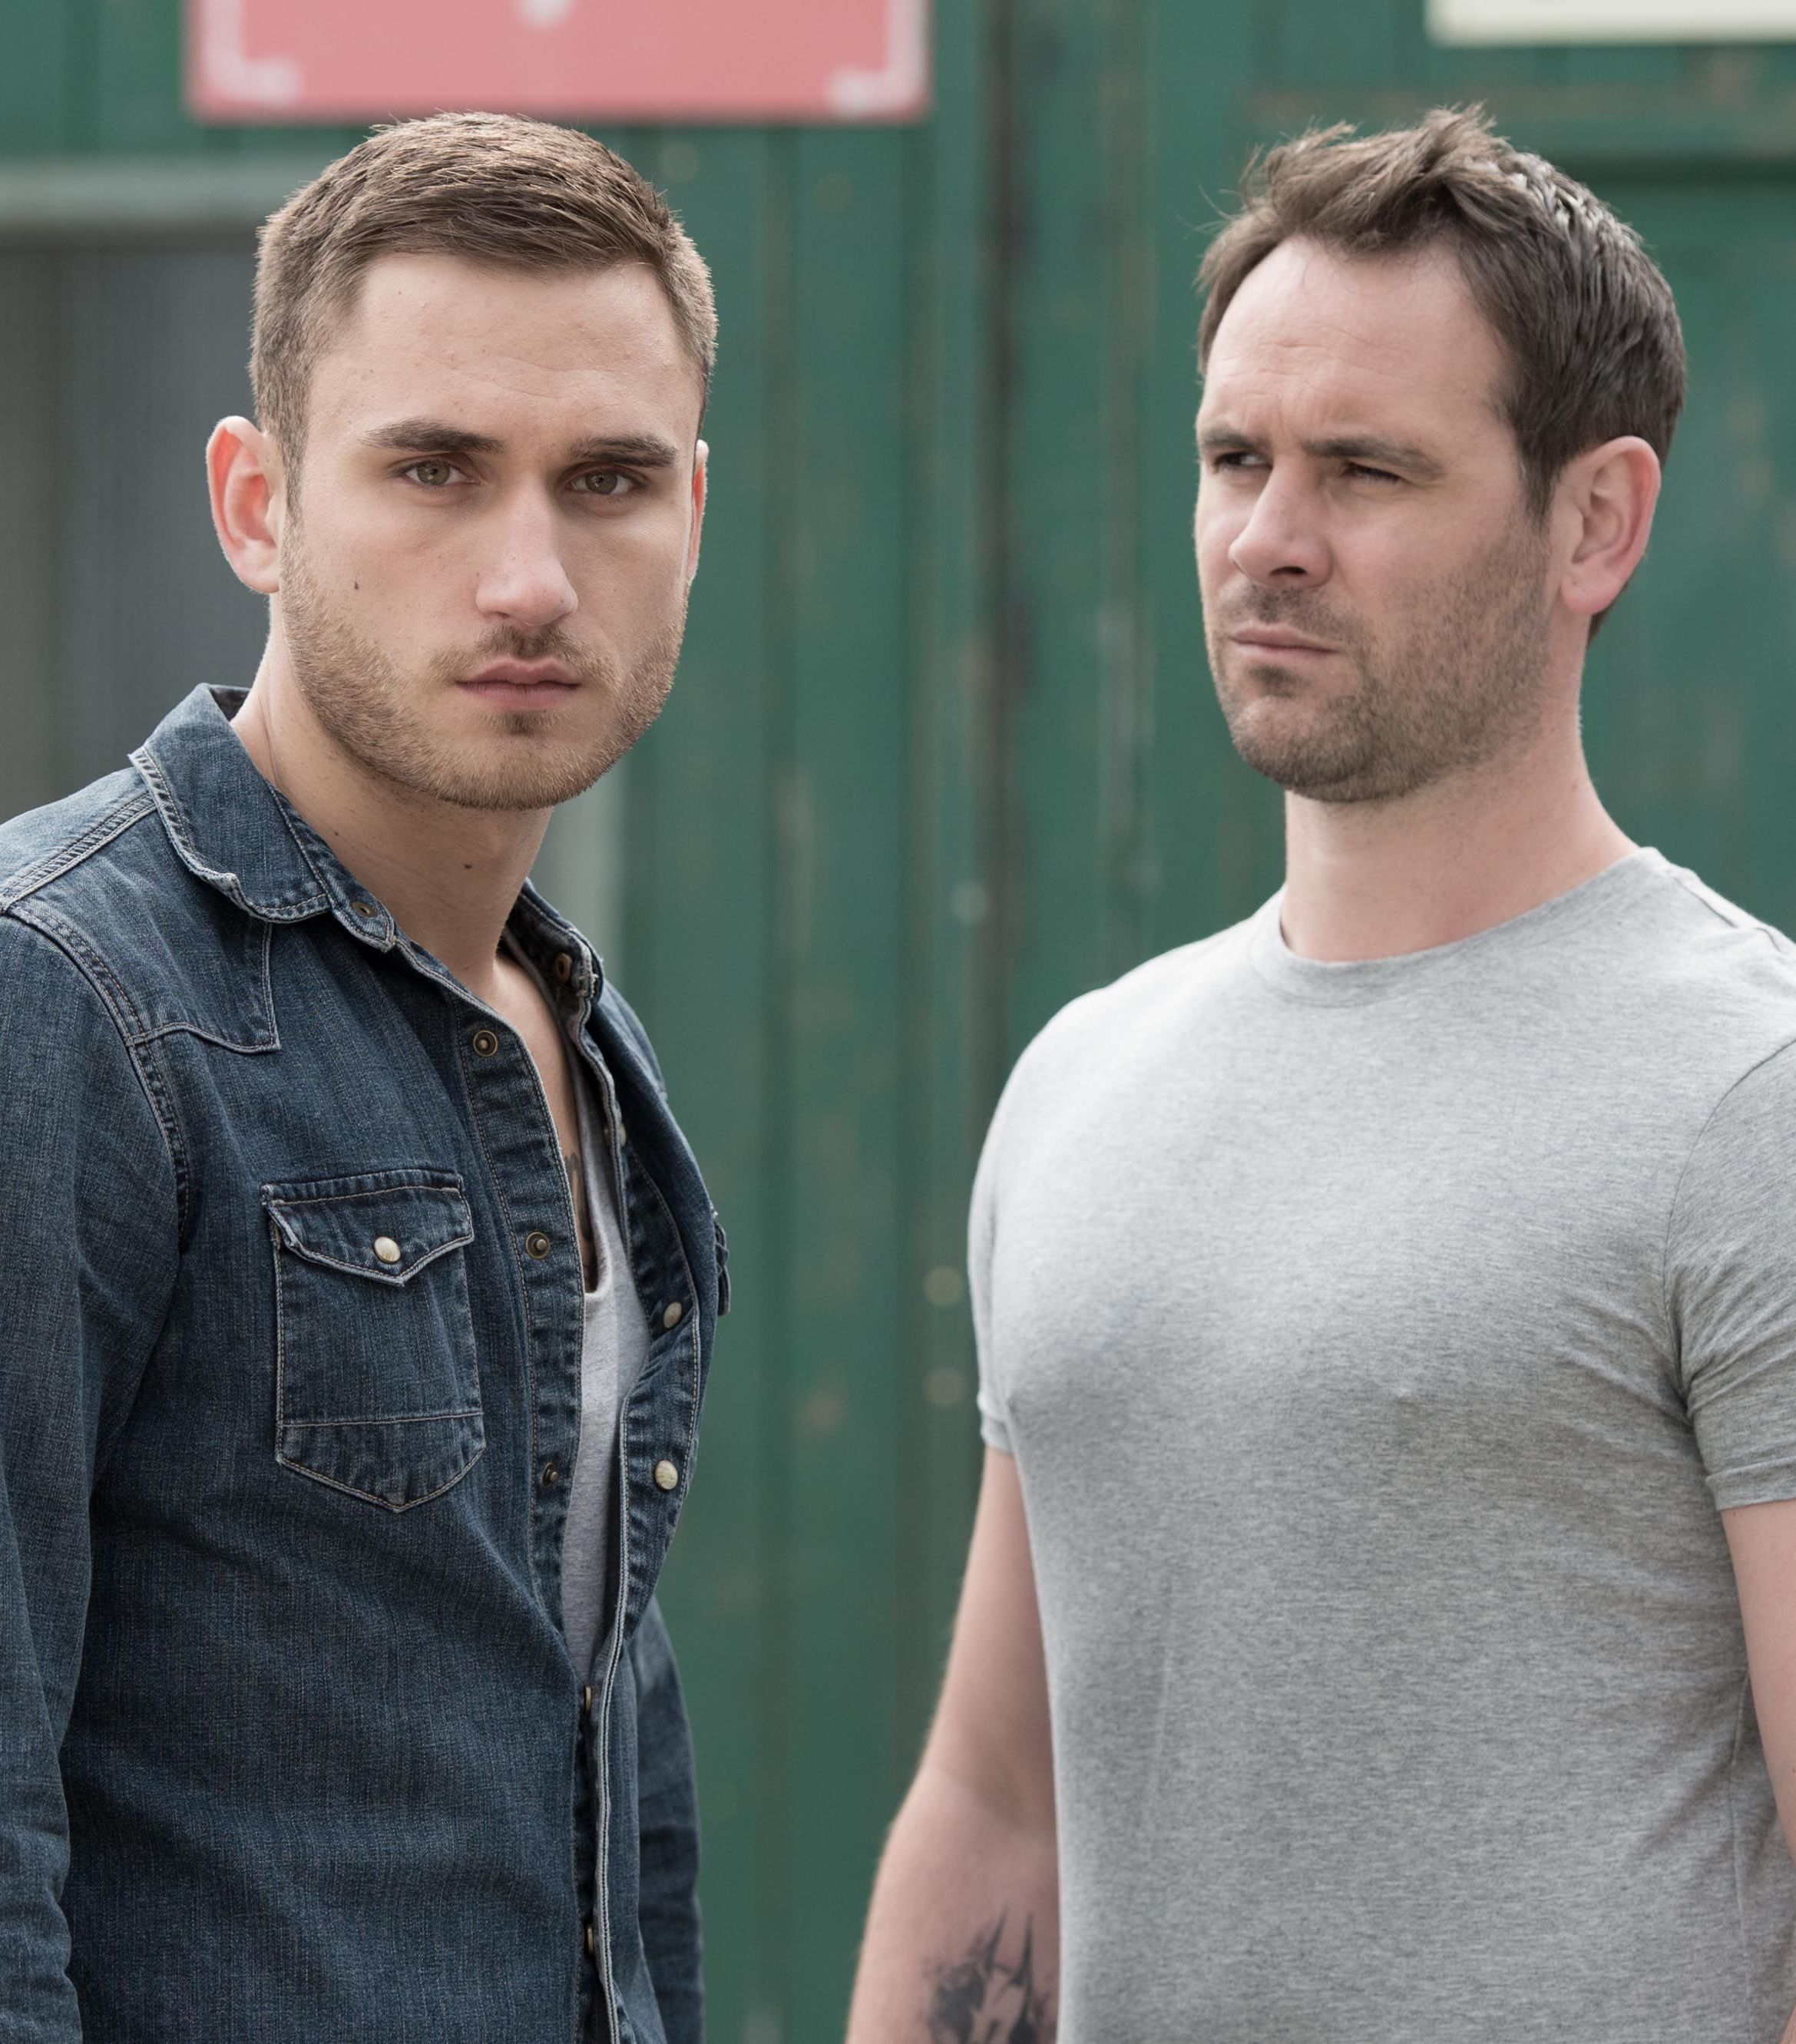 1469356695 soaps hollyoaks freddie roscoe joe roscoe for sale 3 10 Things You Never Knew About Hollyoaks